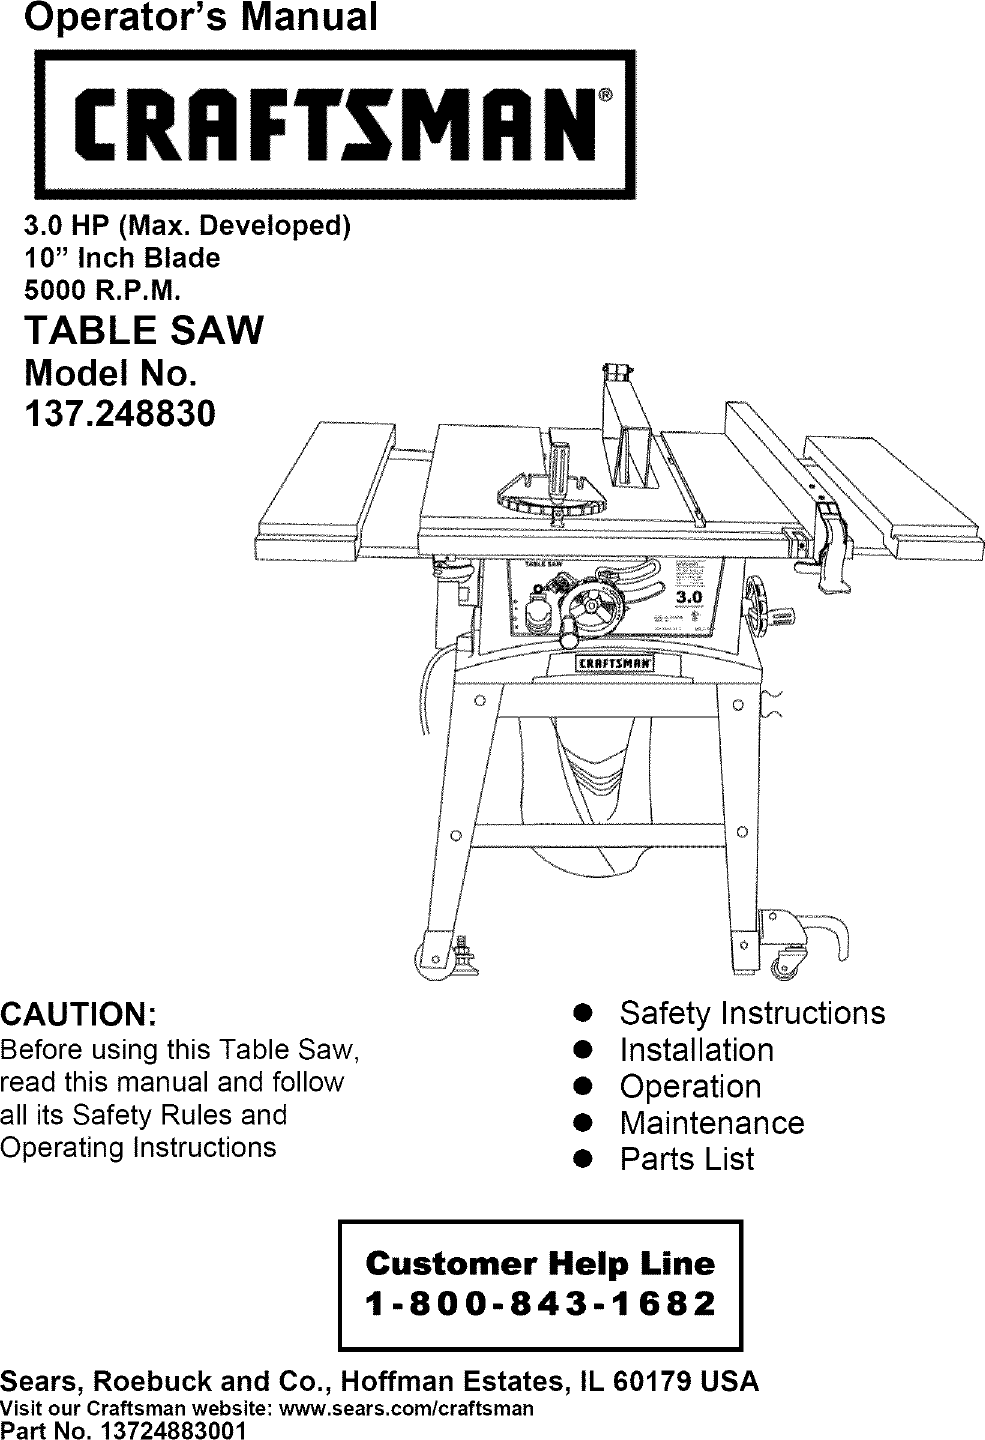 medium resolution of craftsman 137248830 user manual 10 table saw manuals and guides l0606545 wiring diagram for craftsman table saw 137 248830